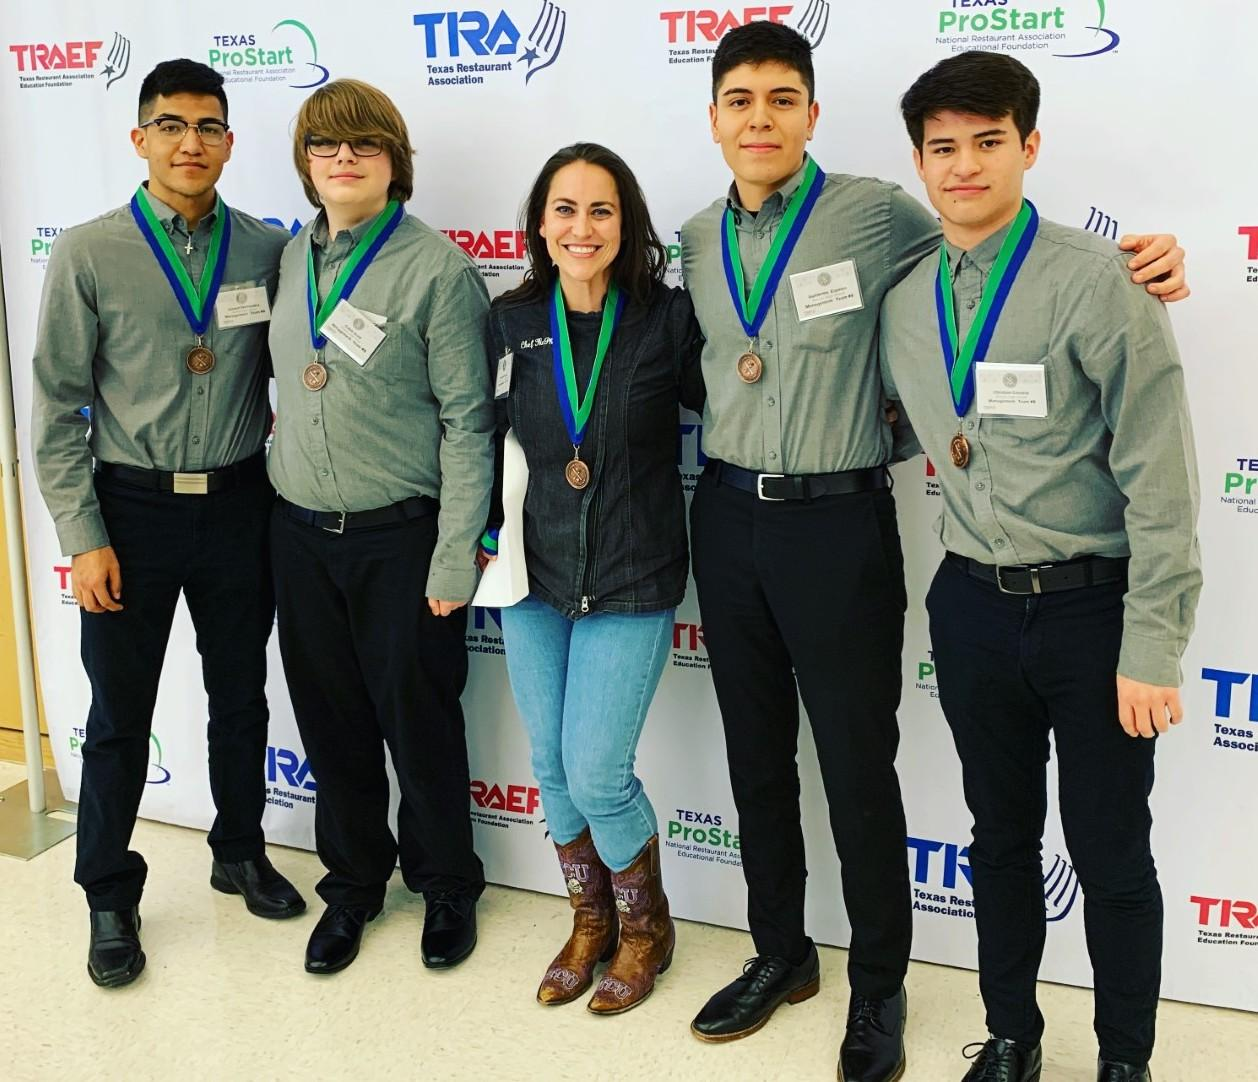 Brewer High School culinary arts students won fourth place in the management competition at ProStart, and they'll advance to state! Pictured l-r with Chef Kaylie McPherson are: Joseph Hernandez, Caleb Scott, Guillermo Esparza and Christian Cavazos.